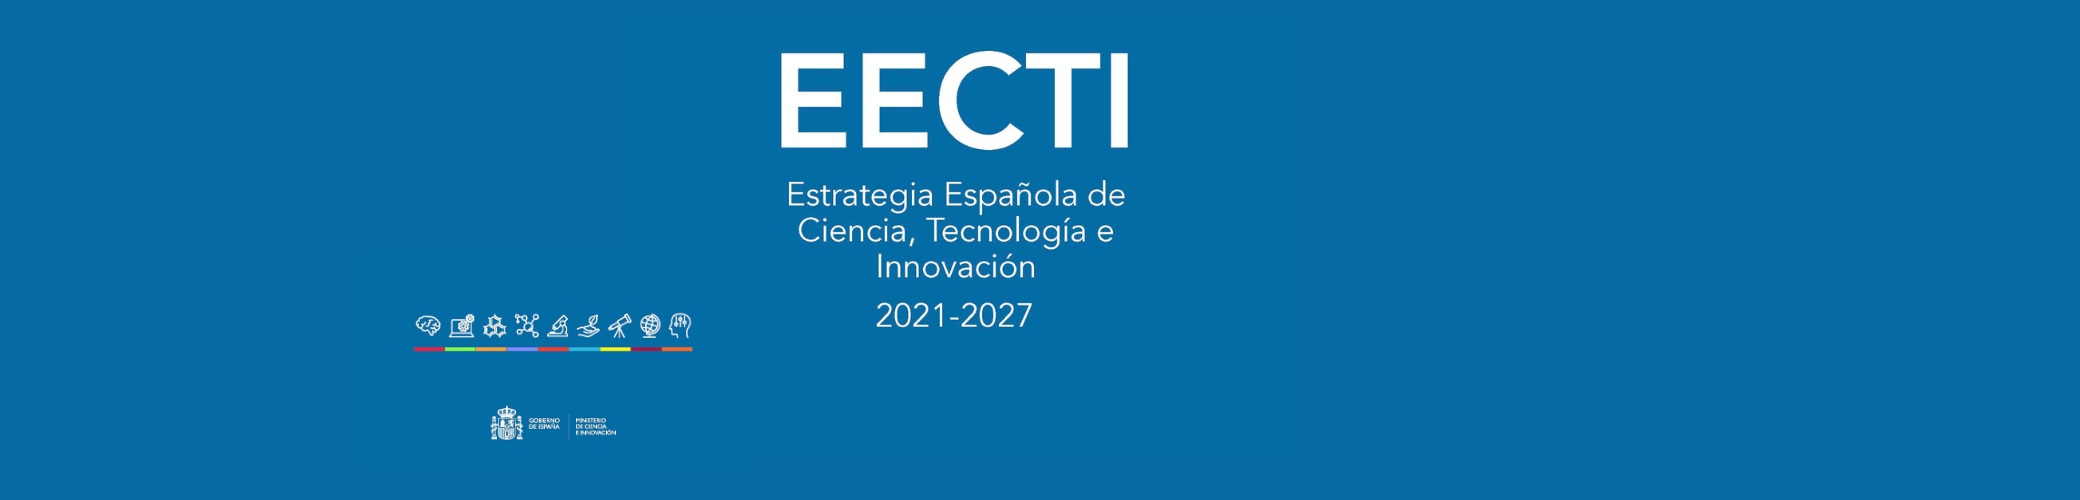 Spanish Strategy for Science, Technology and Innovation 2021-2027